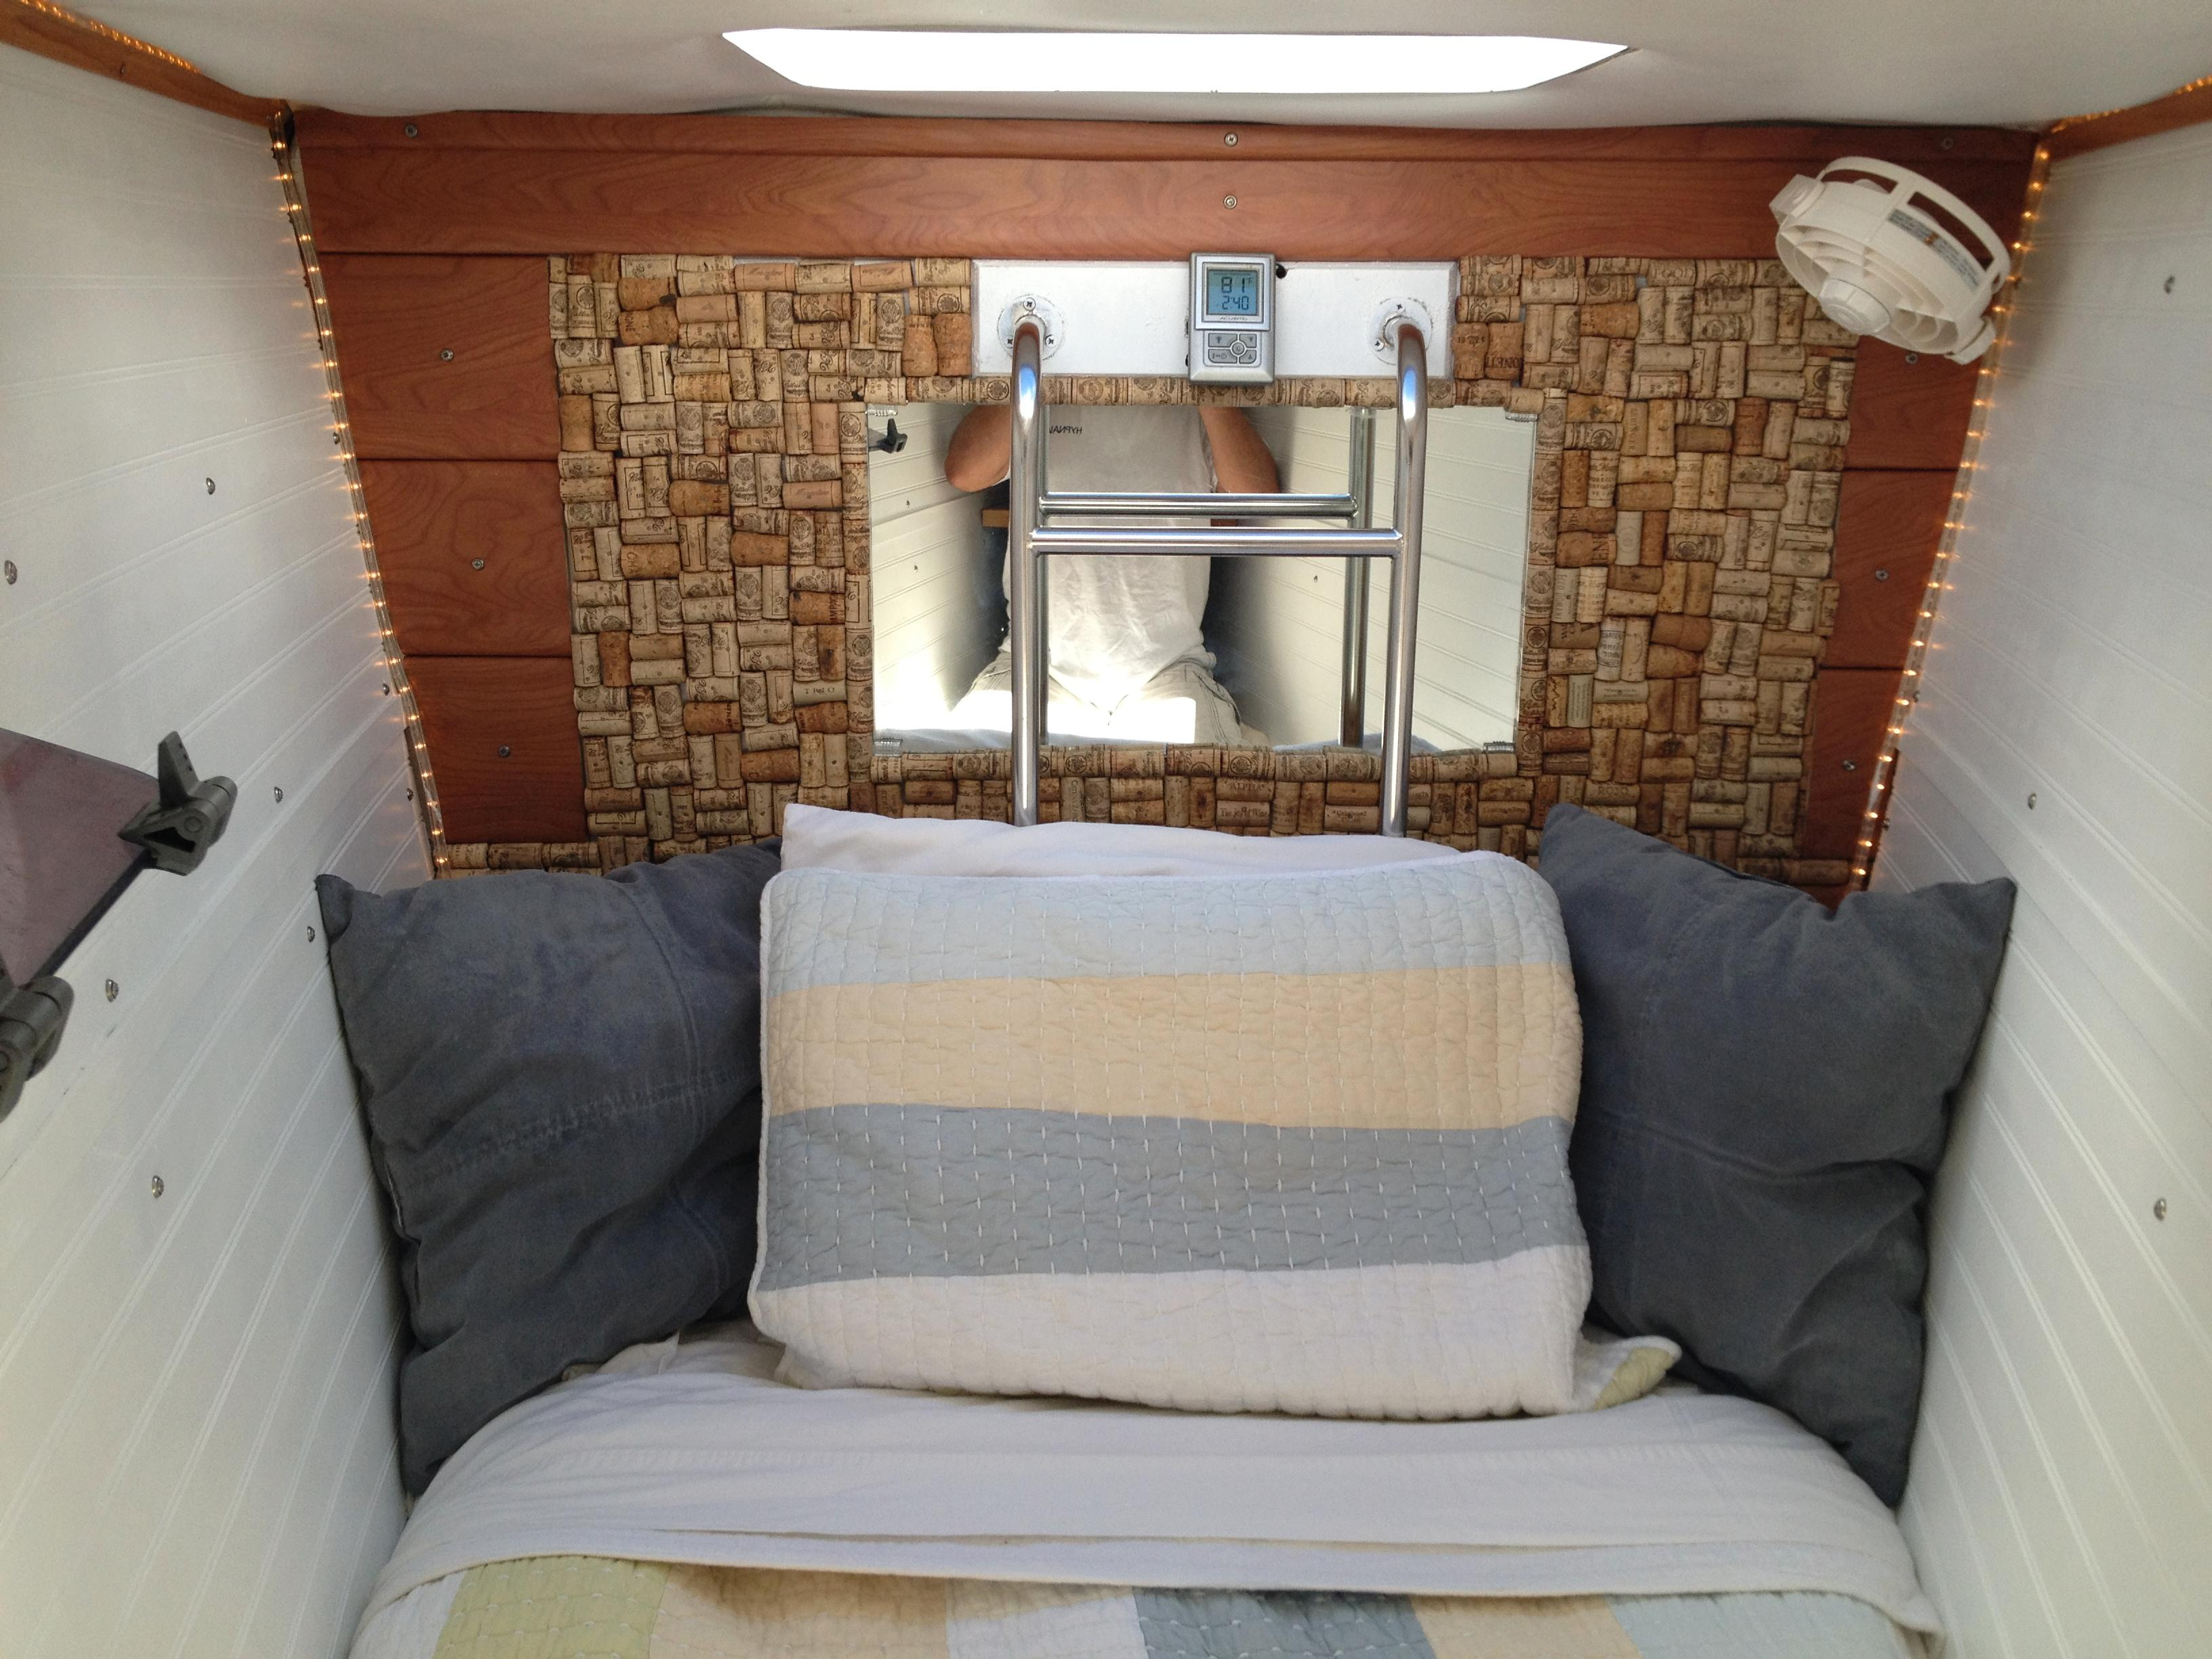 Converted Forepeak Cabin